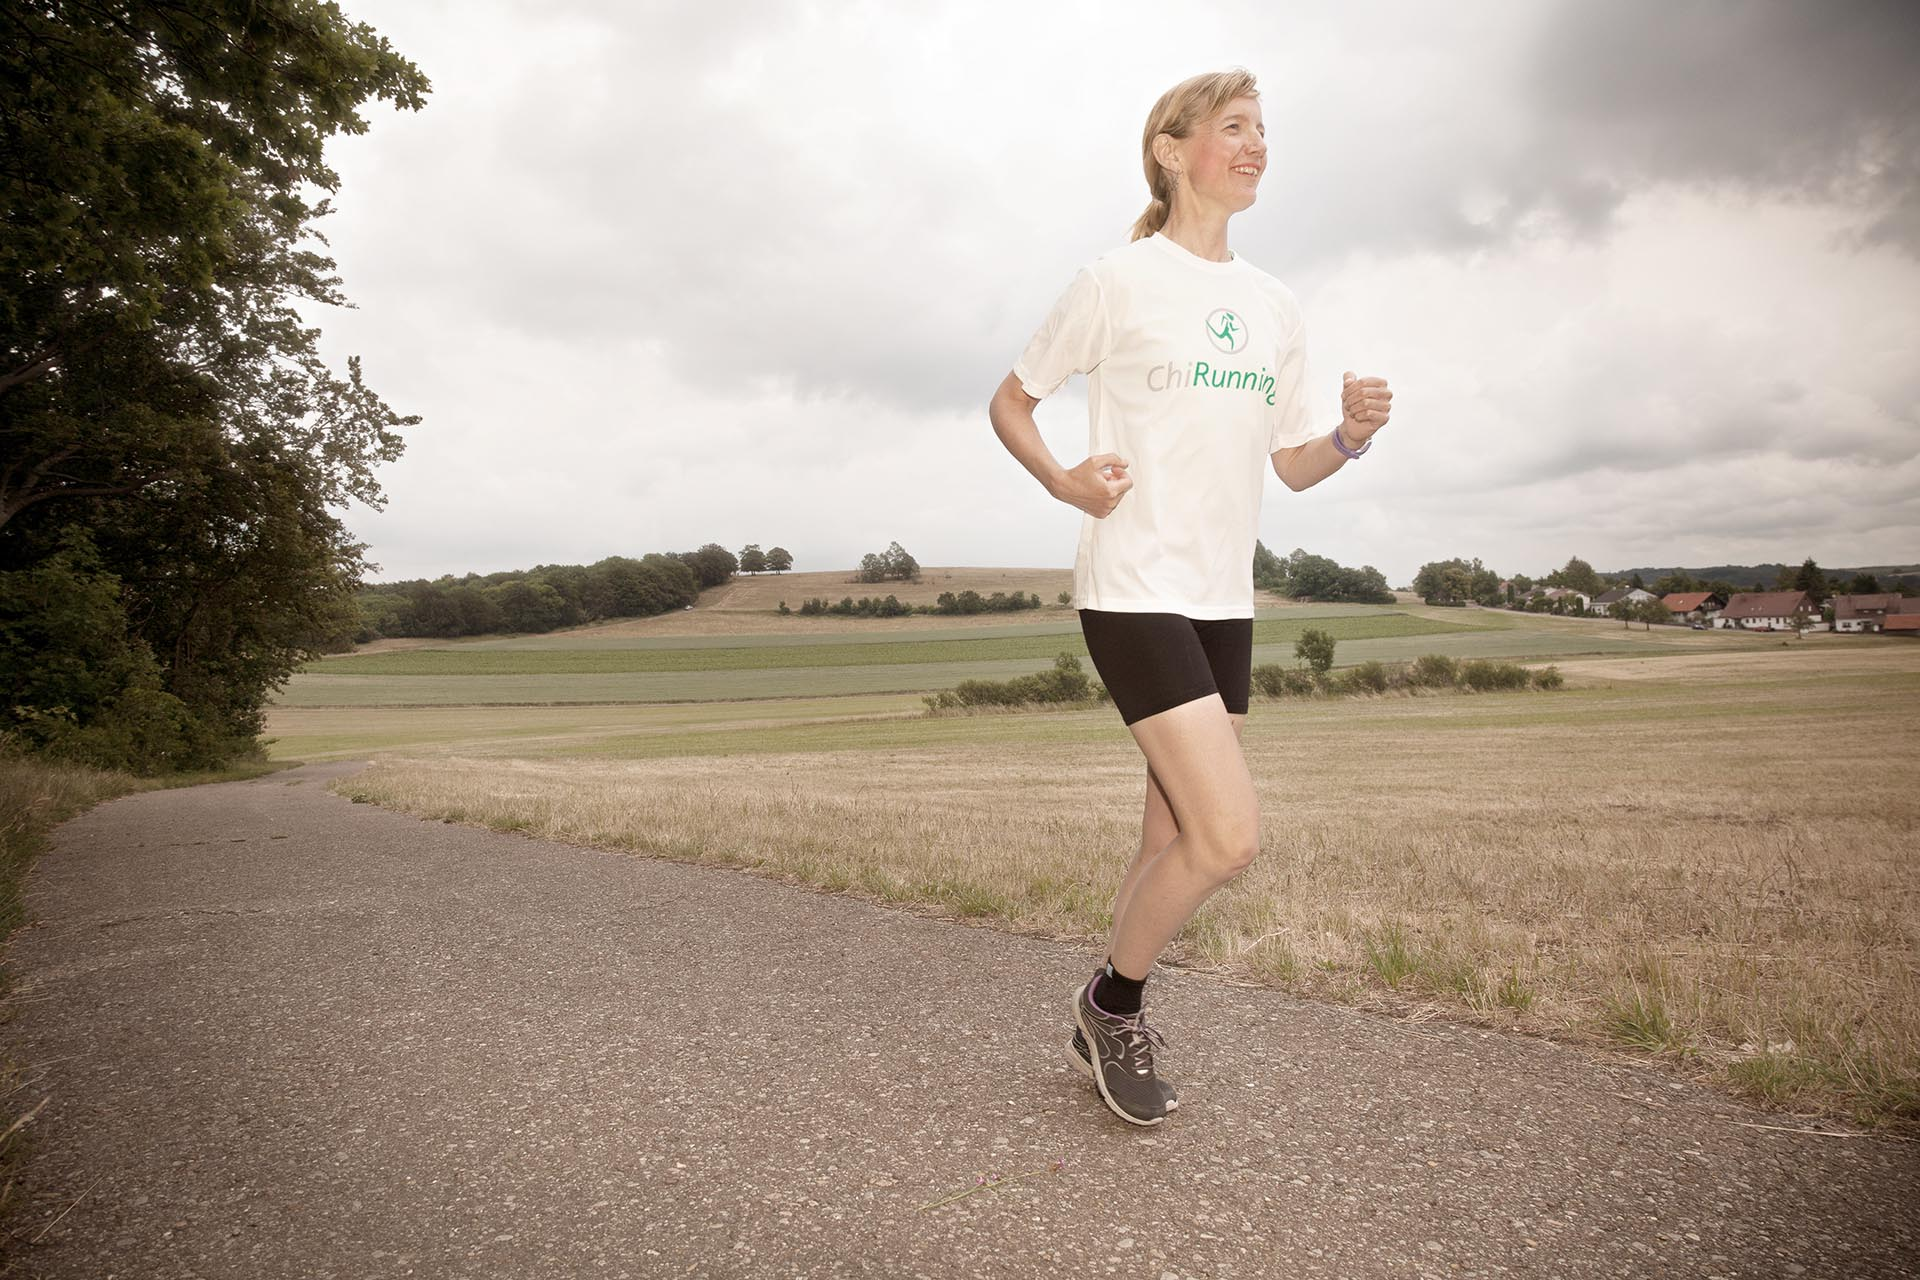 Peoplefotografie: Chi Running Instructor Fiona McLellan